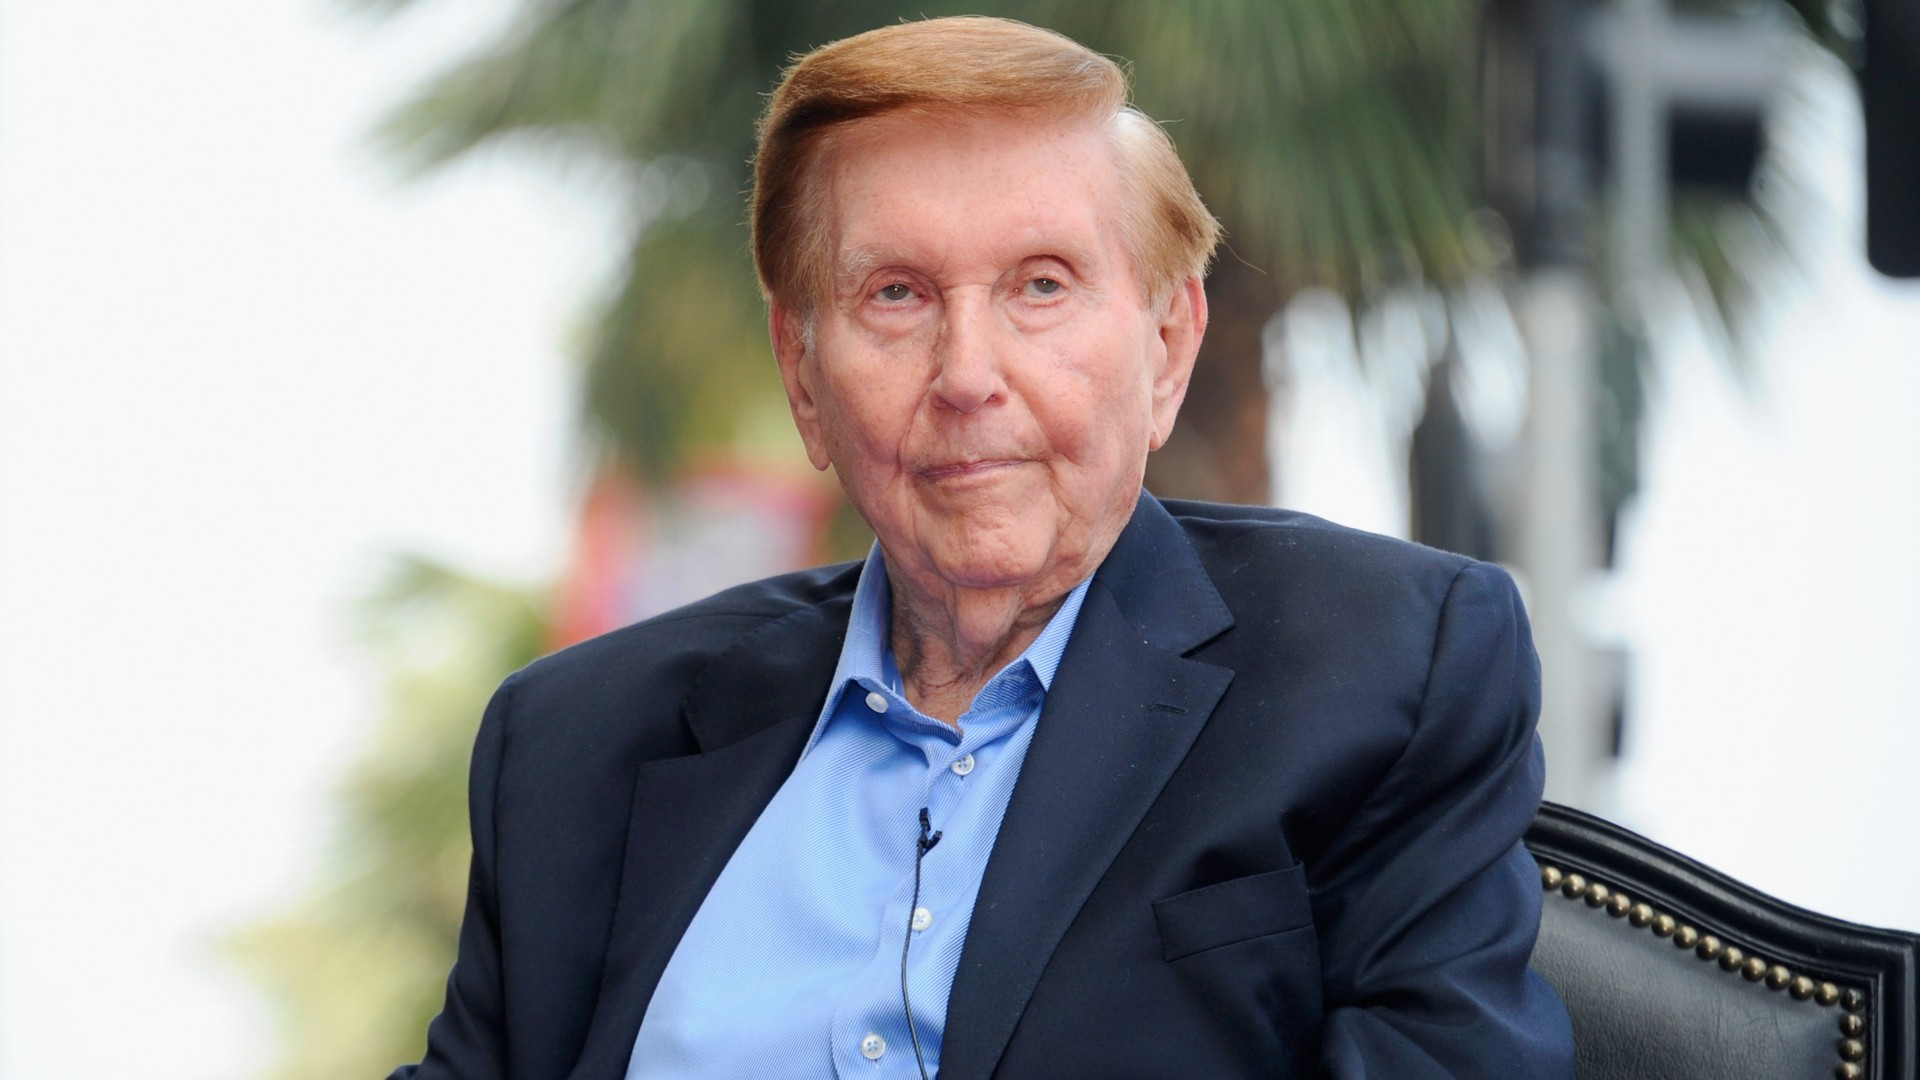 Execitve Chairman and CEO of Viacom and CBS Corporation Sumner Redstone attends a ceremony honoring him with the 2,467th star on the Hollywood Walk of Fame on March 30, 2012 in Hollywood. (Alberto E. Rodriguez/Getty Images)